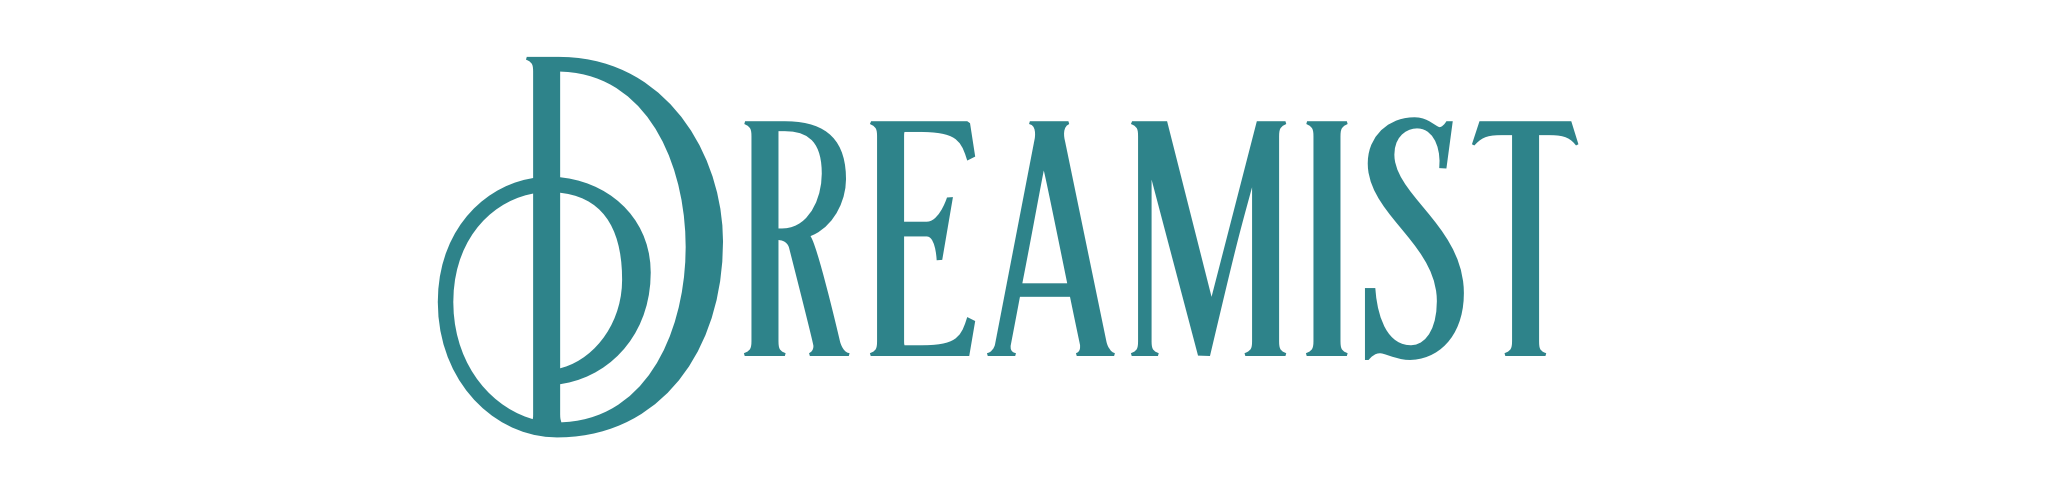 Dreamist_logo_green.png